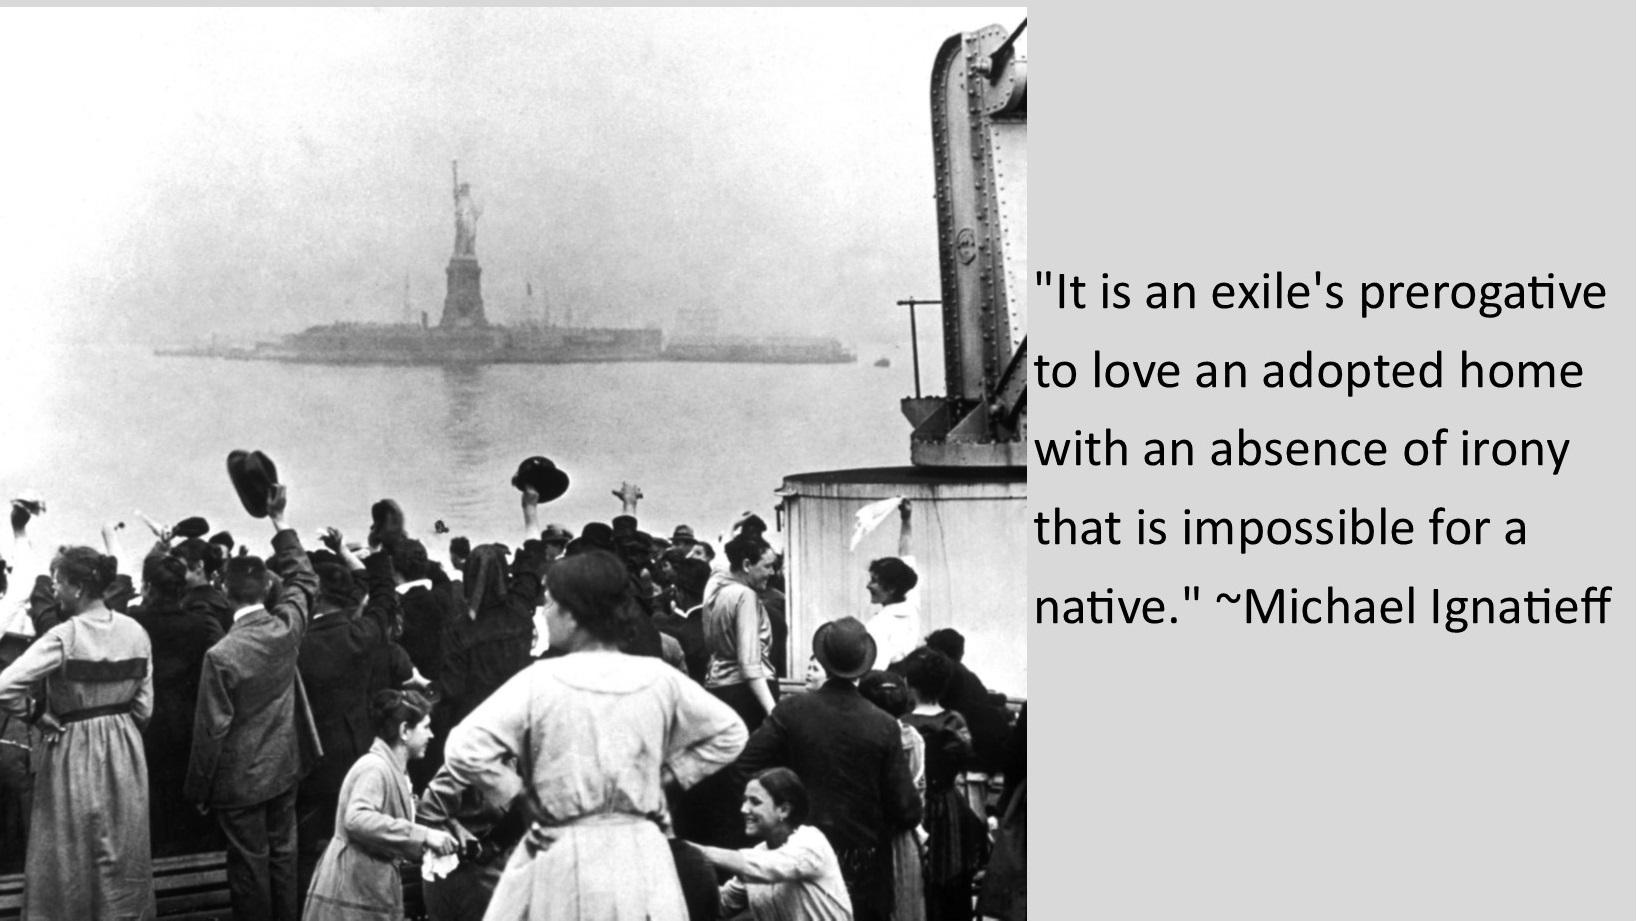 """""""It is an exile's prerogative to love an adopted home with an absence of irony that is impossible for a native."""" ~ Michael Ignatieff [1650 x 935]"""